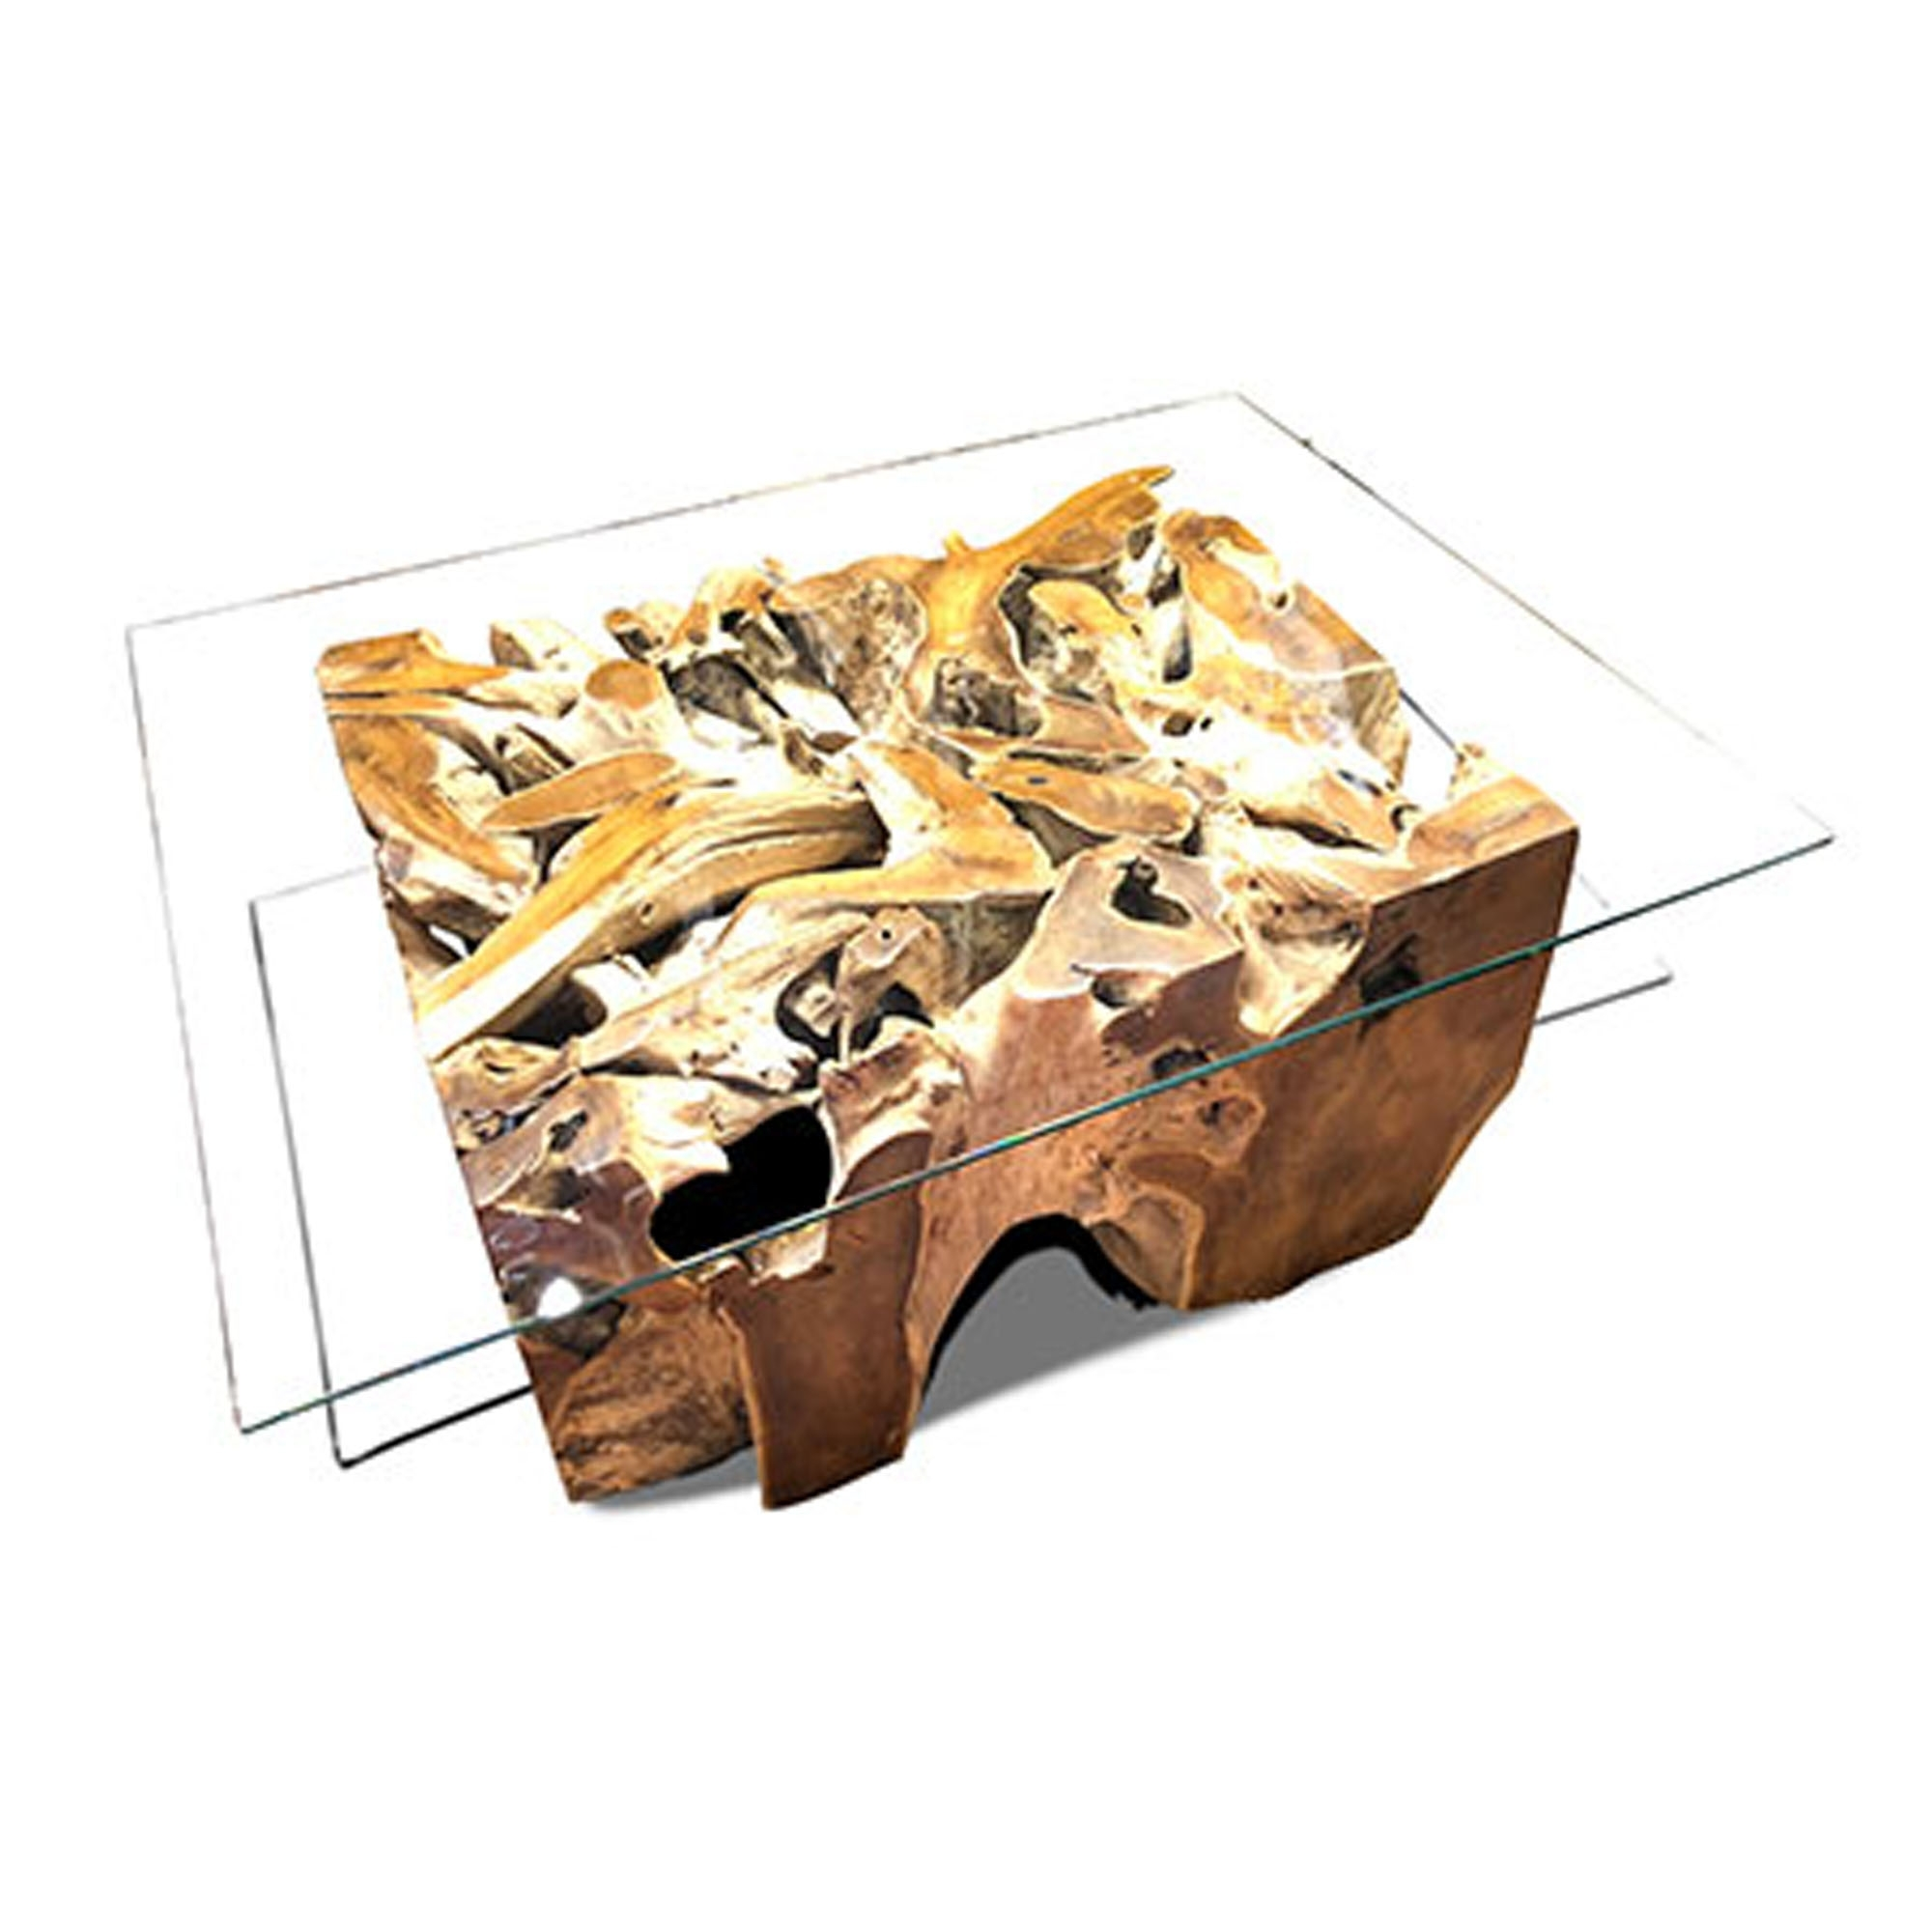 Teak Root Coffee Table Spider Stone Rectangular With Glass